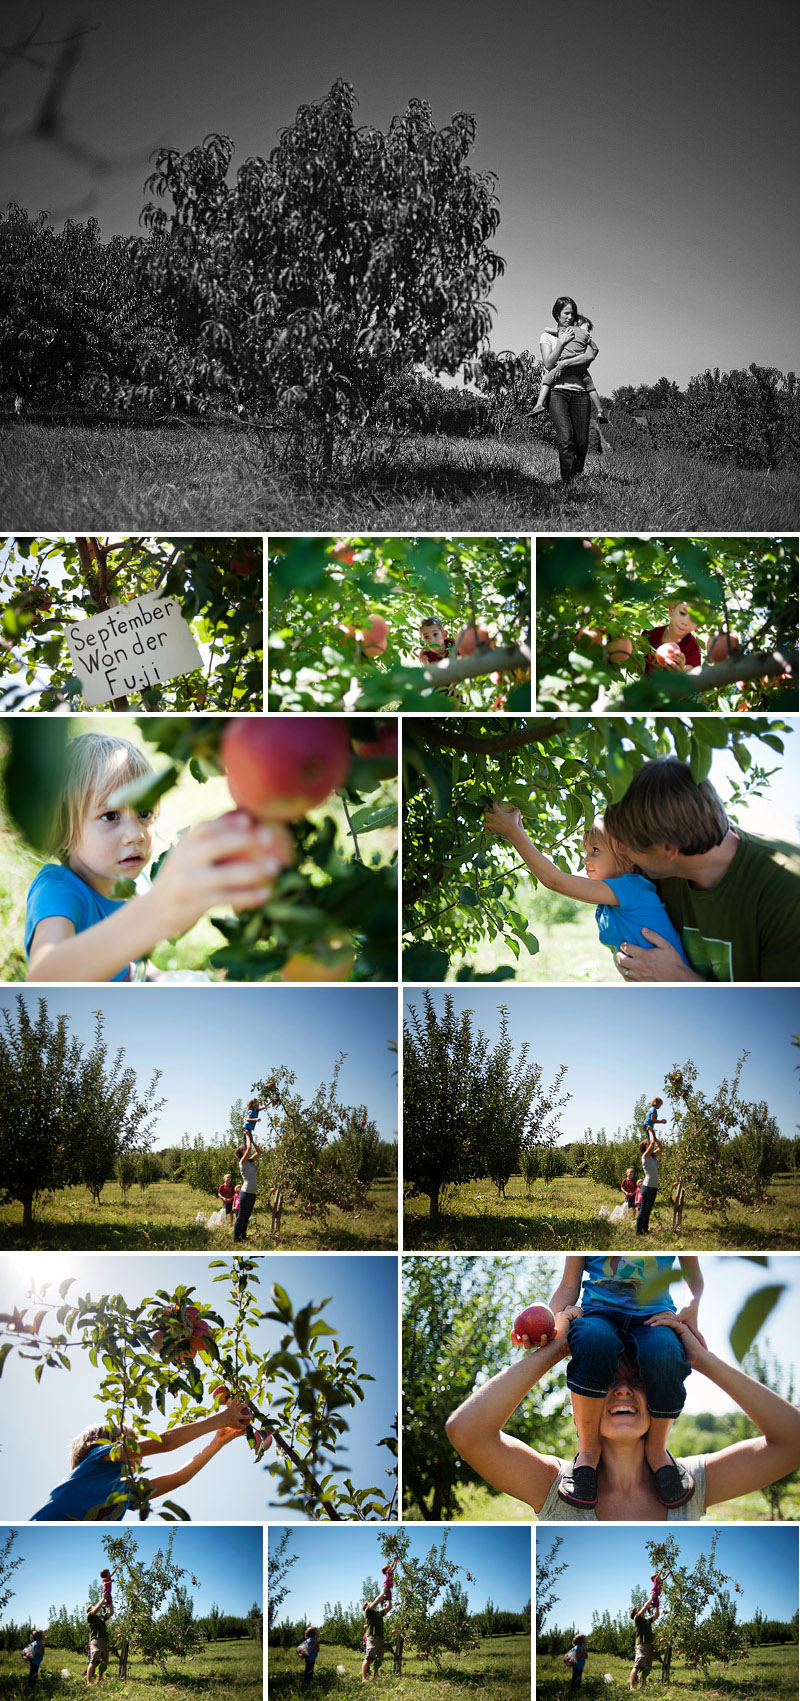 apples are fun to pick schweizer orchard